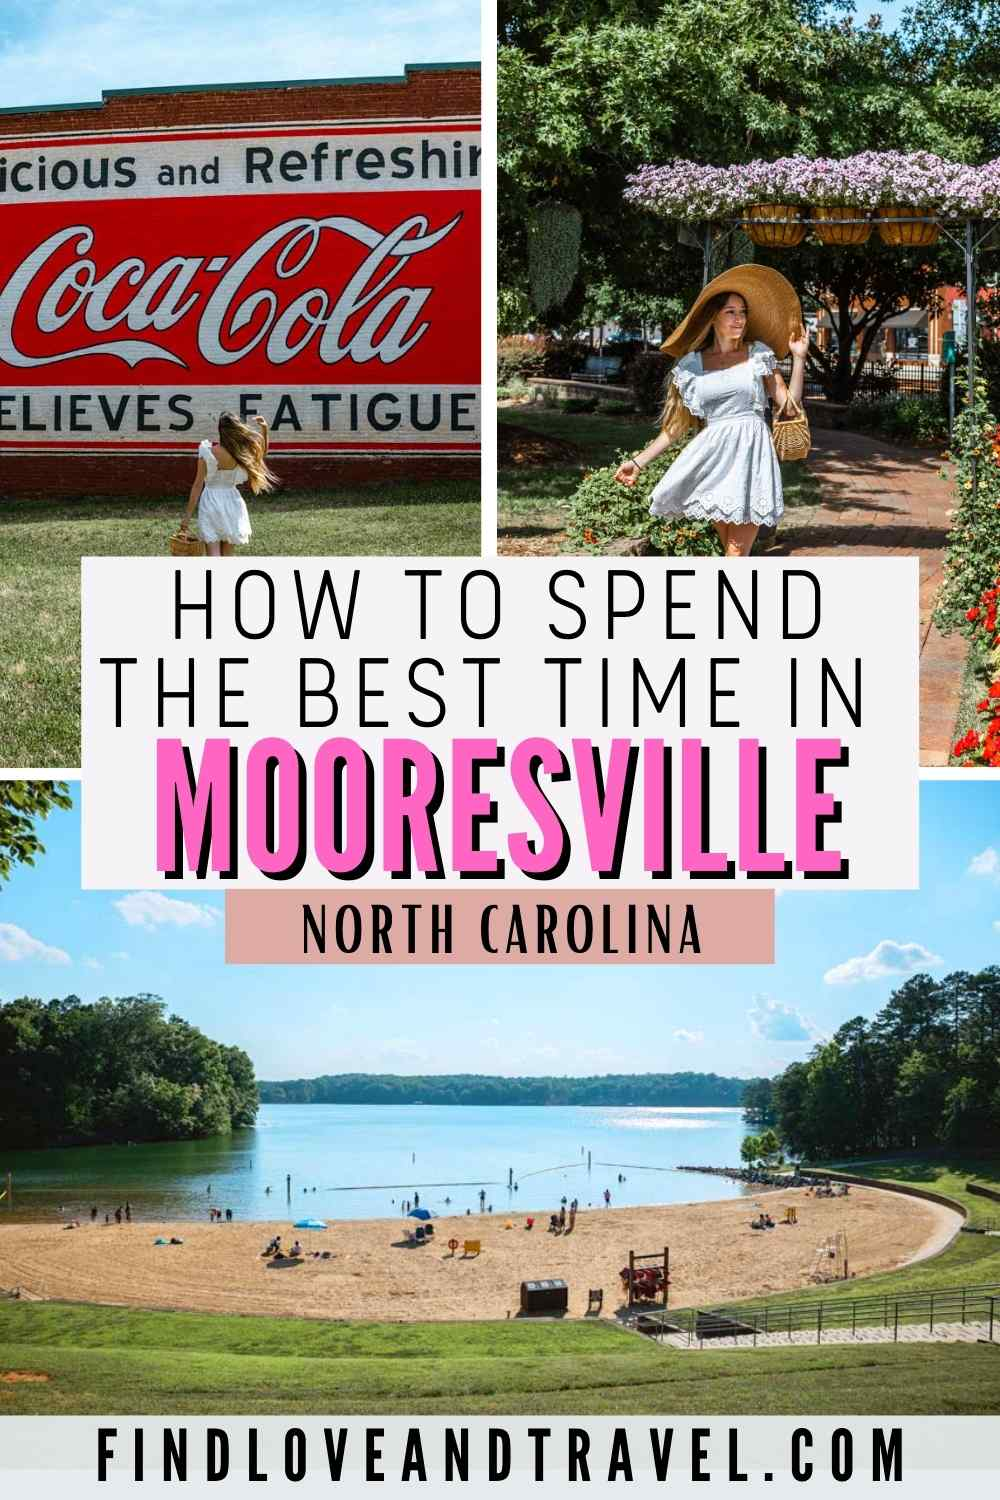 Best things to do in Mooresville, NC trip itinerary